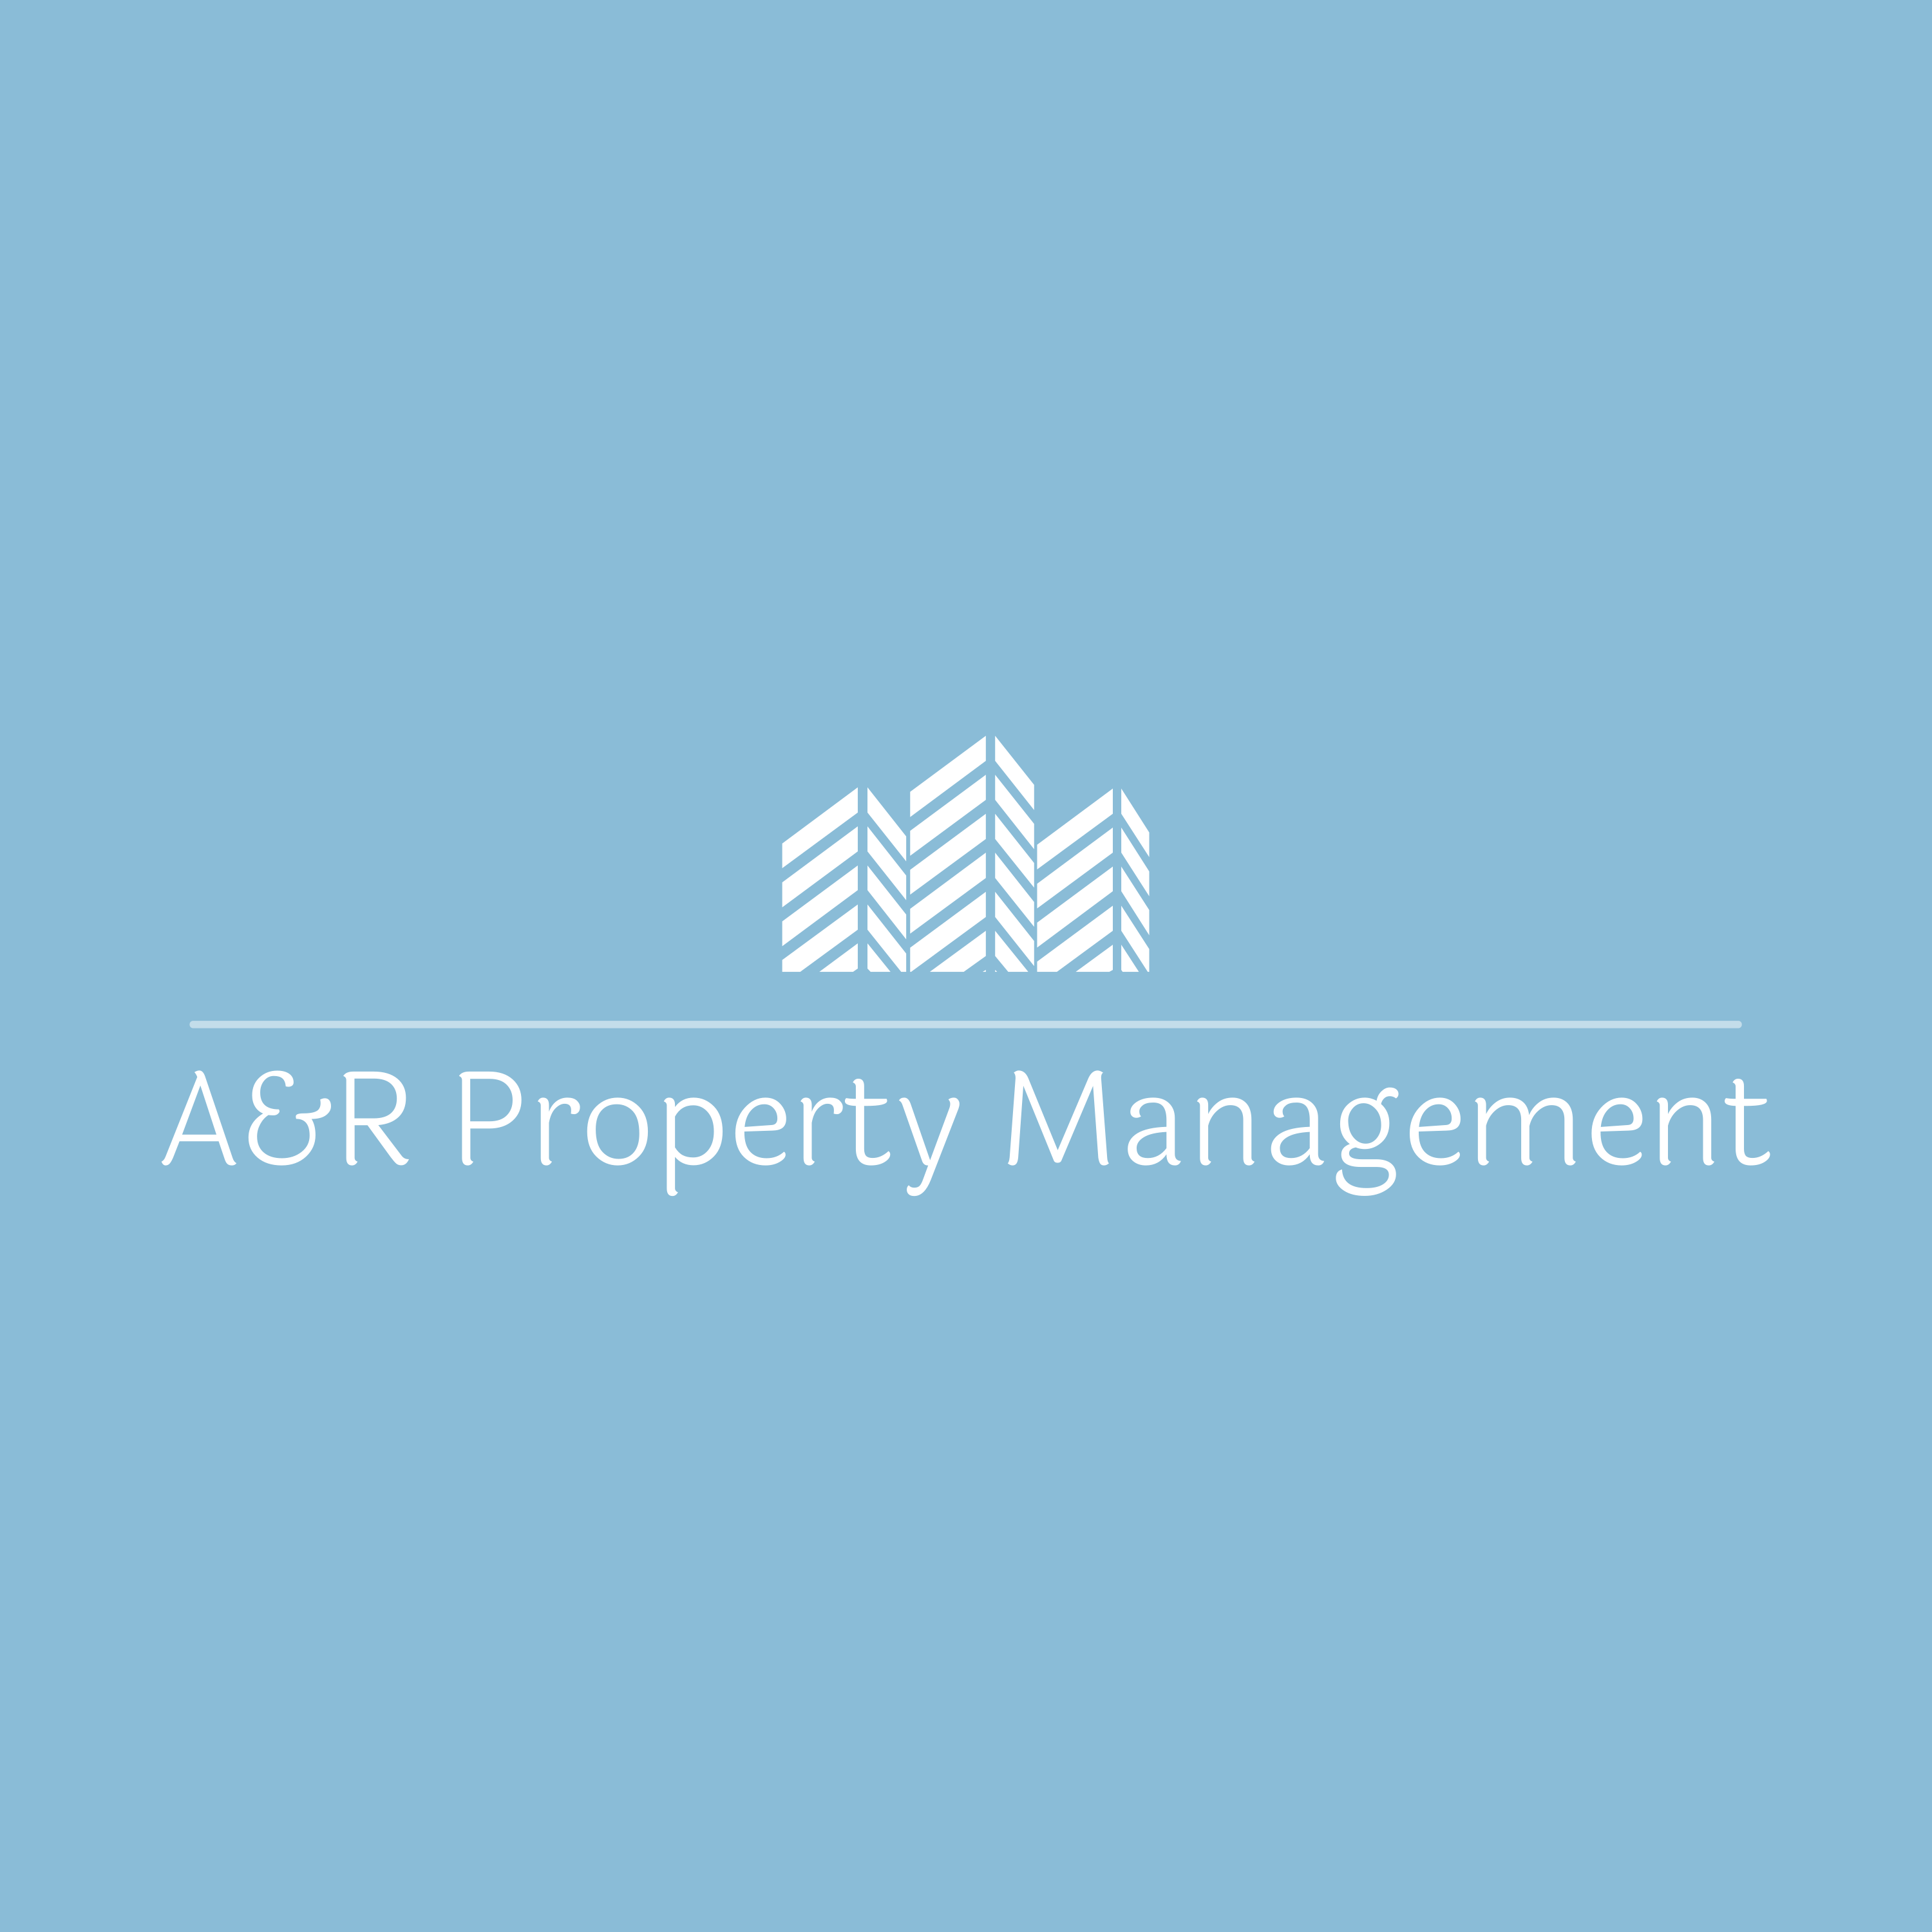 A&R Property Management